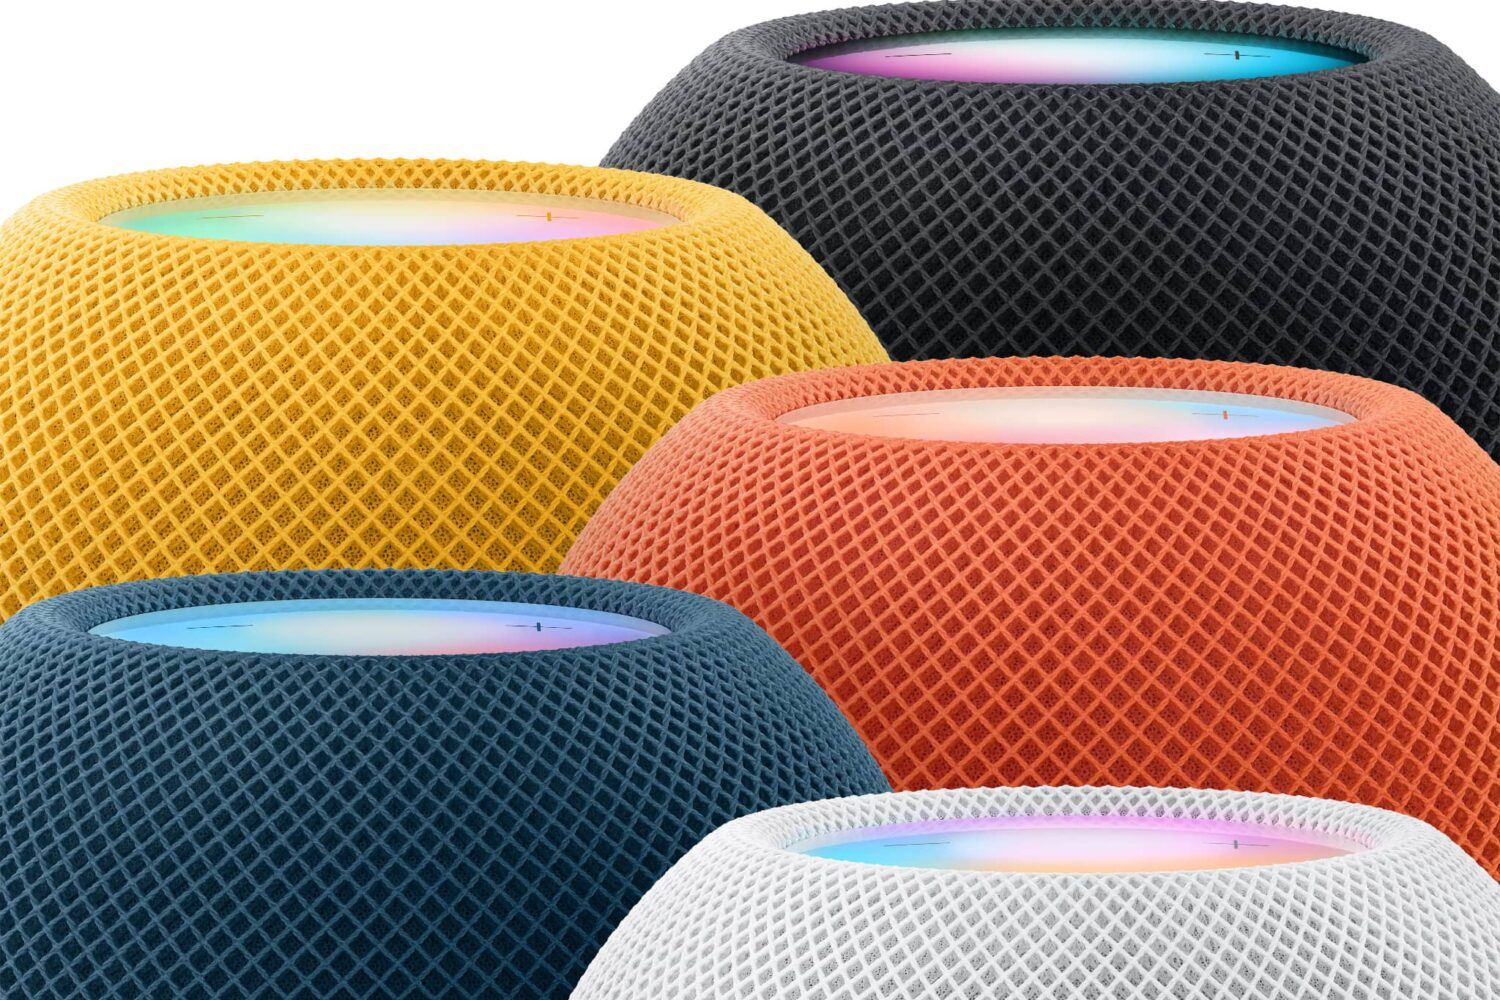 Apple's marketing image showing the upper half of the HomePod mini speakers in black, white, blue, orange and yellow